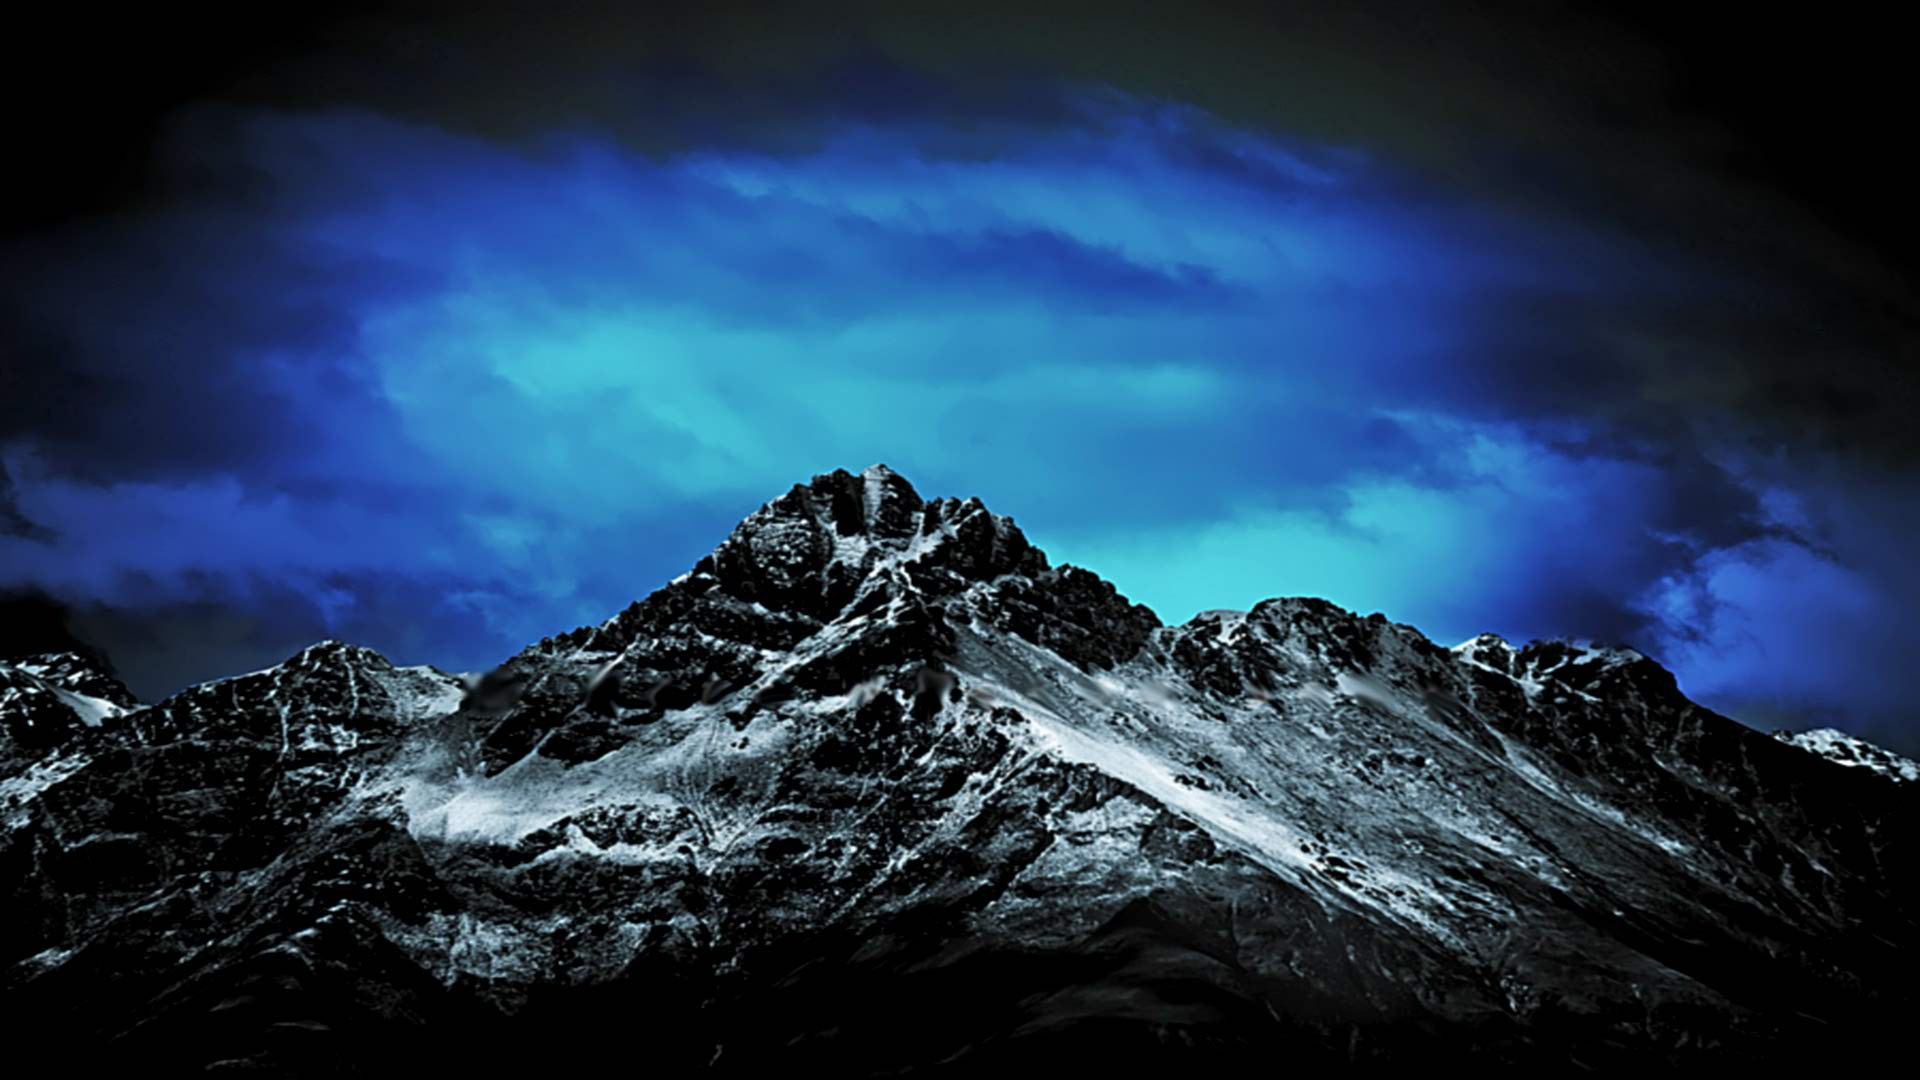 3d Iphone 7 Plus Wallpaper Blue Mountain Wallpapers Group 76